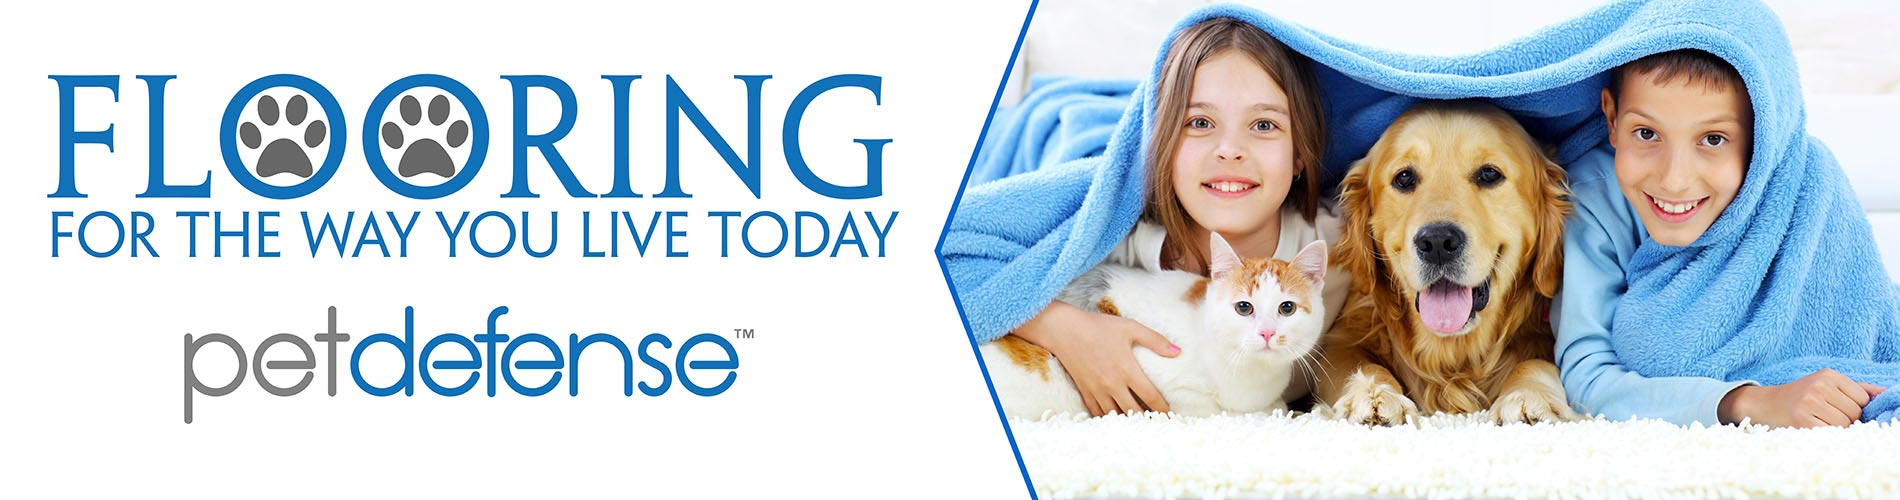 Pet Defense - Flooring for the way you live today